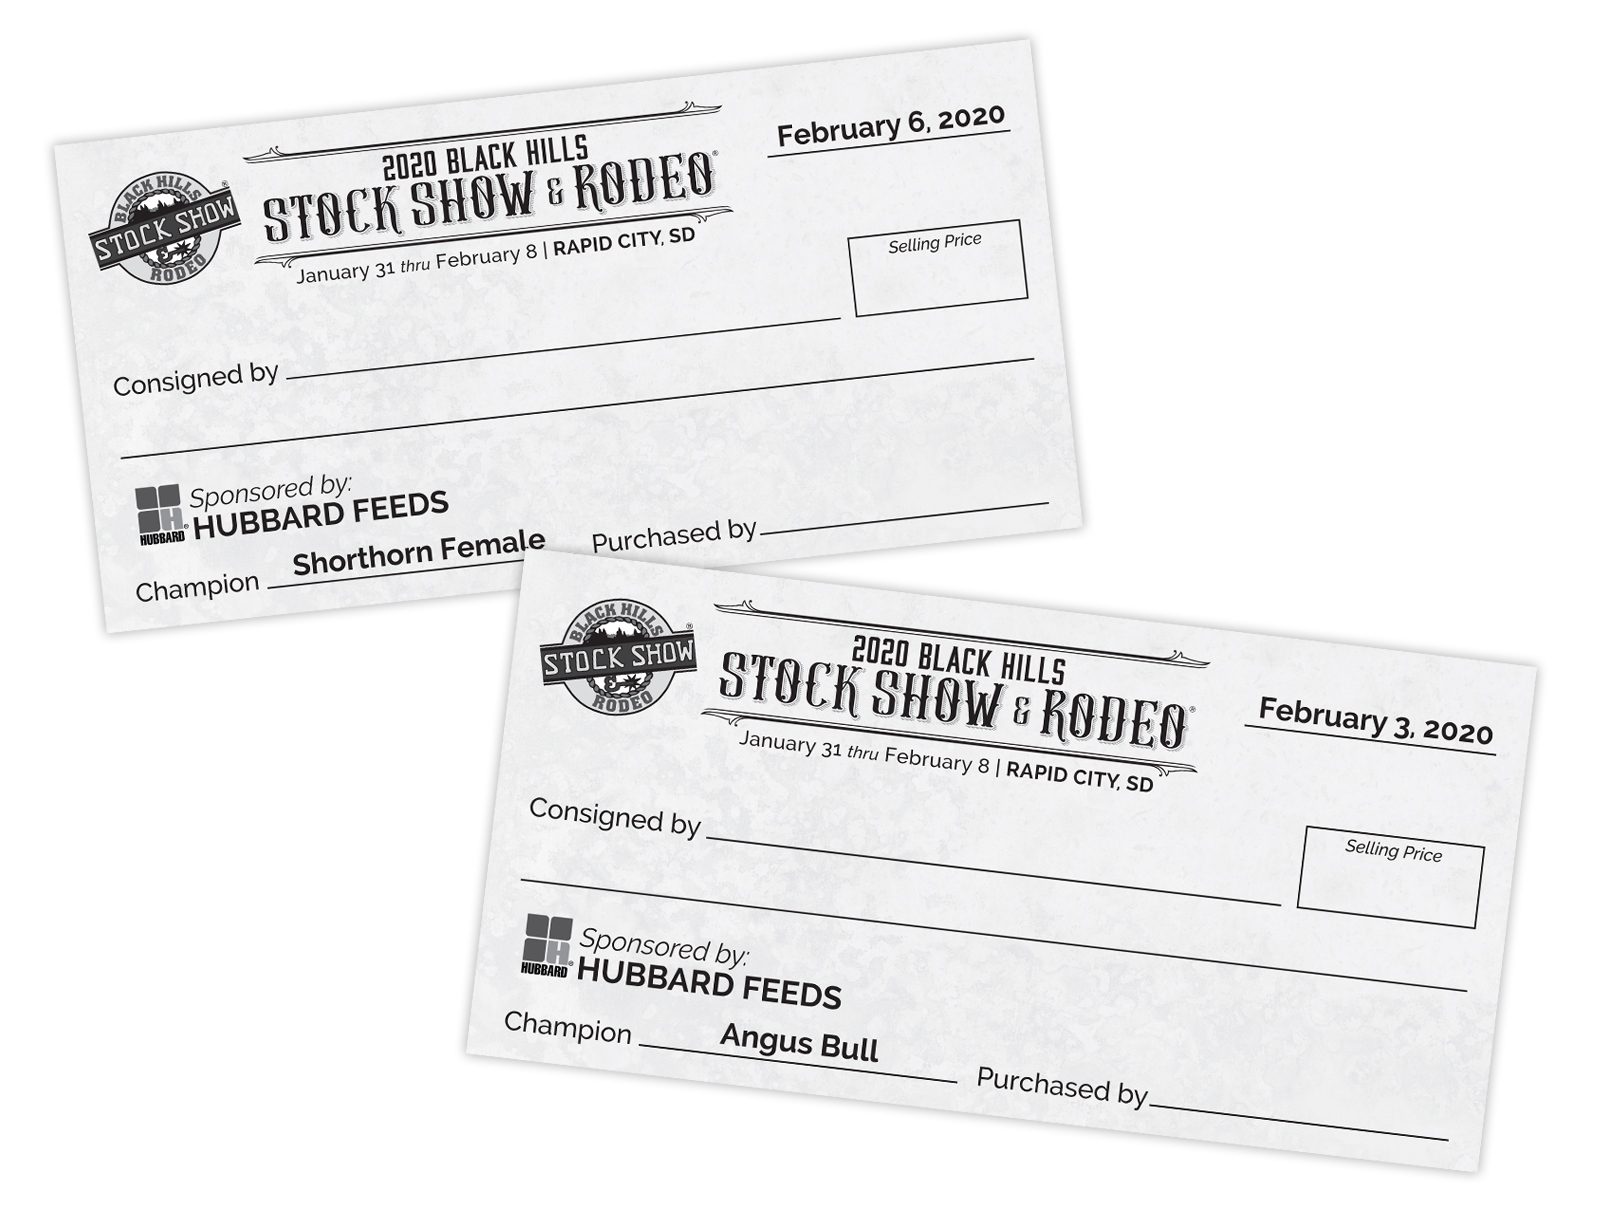 Oversized Checks for Cattle Sales